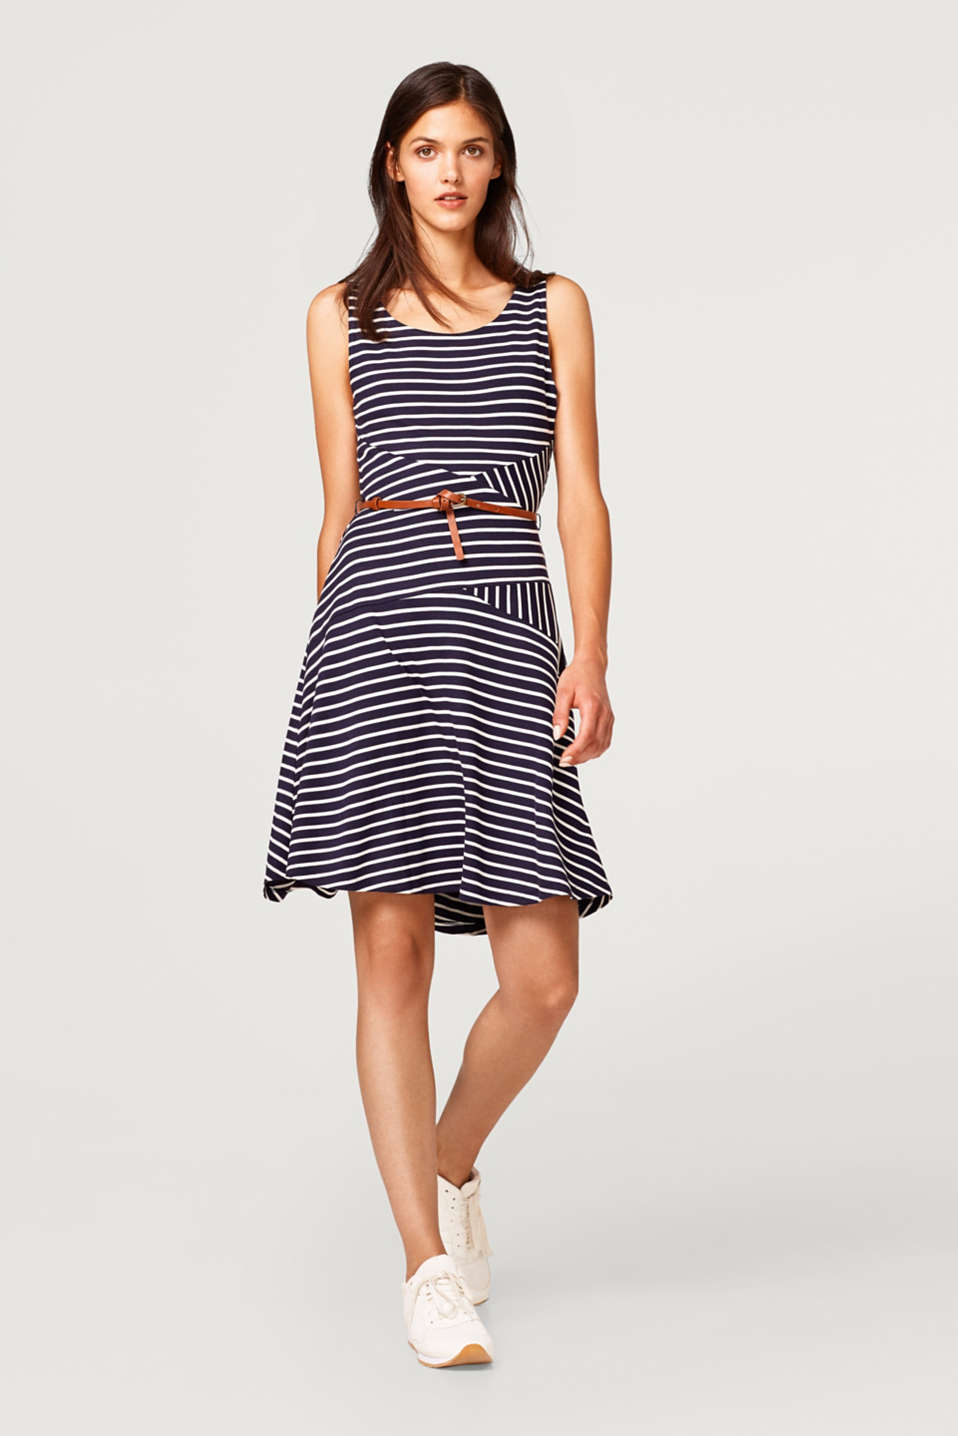 Striped jersey dress with a belt